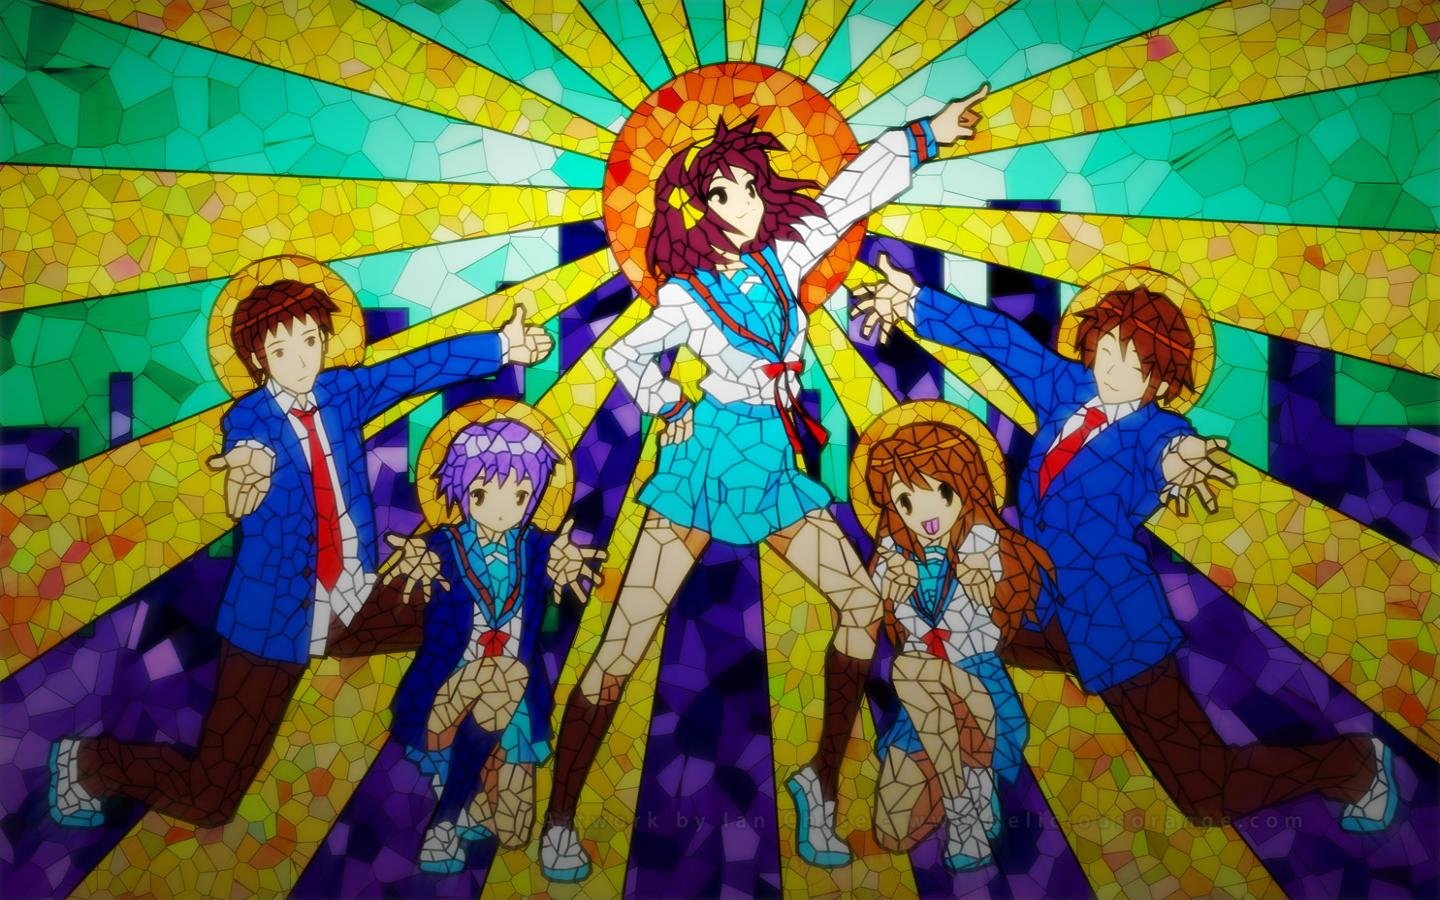 Awesome The Melancholy Of Haruhi Suzumiya free background ID:139377 for hd 1440x900 PC